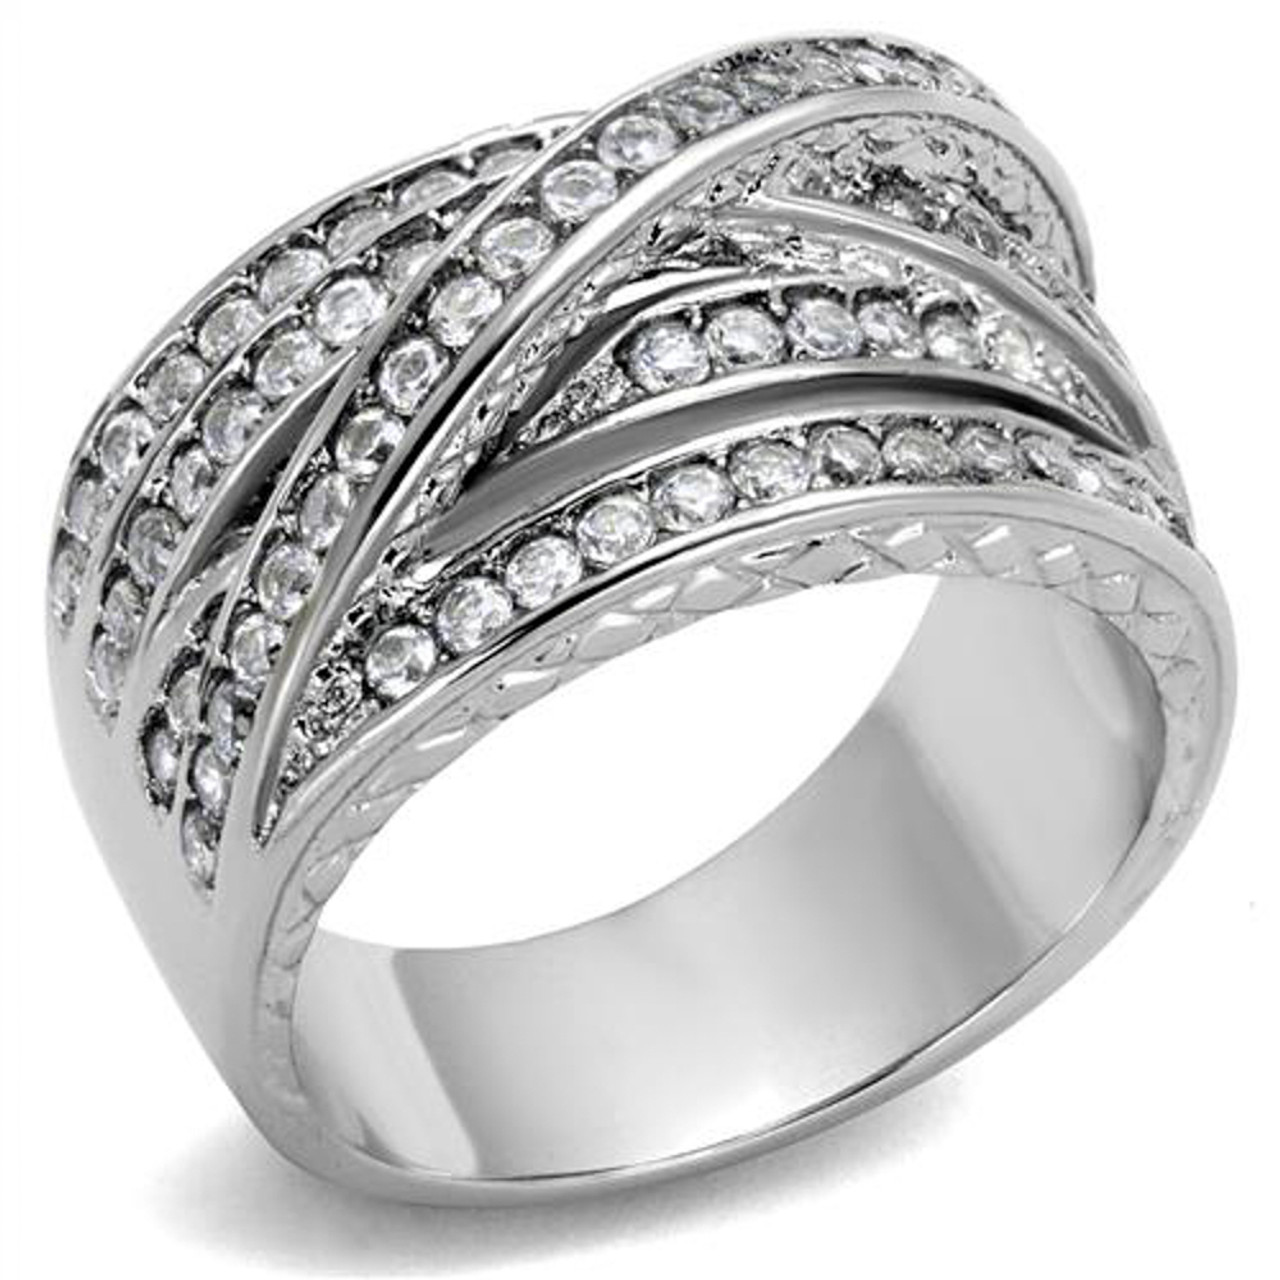 WOMEN/'S ROUND CUT AAA CZ STAINLESS STEEL ANNIVERSARY FASHION RING BAND SIZE 5-10